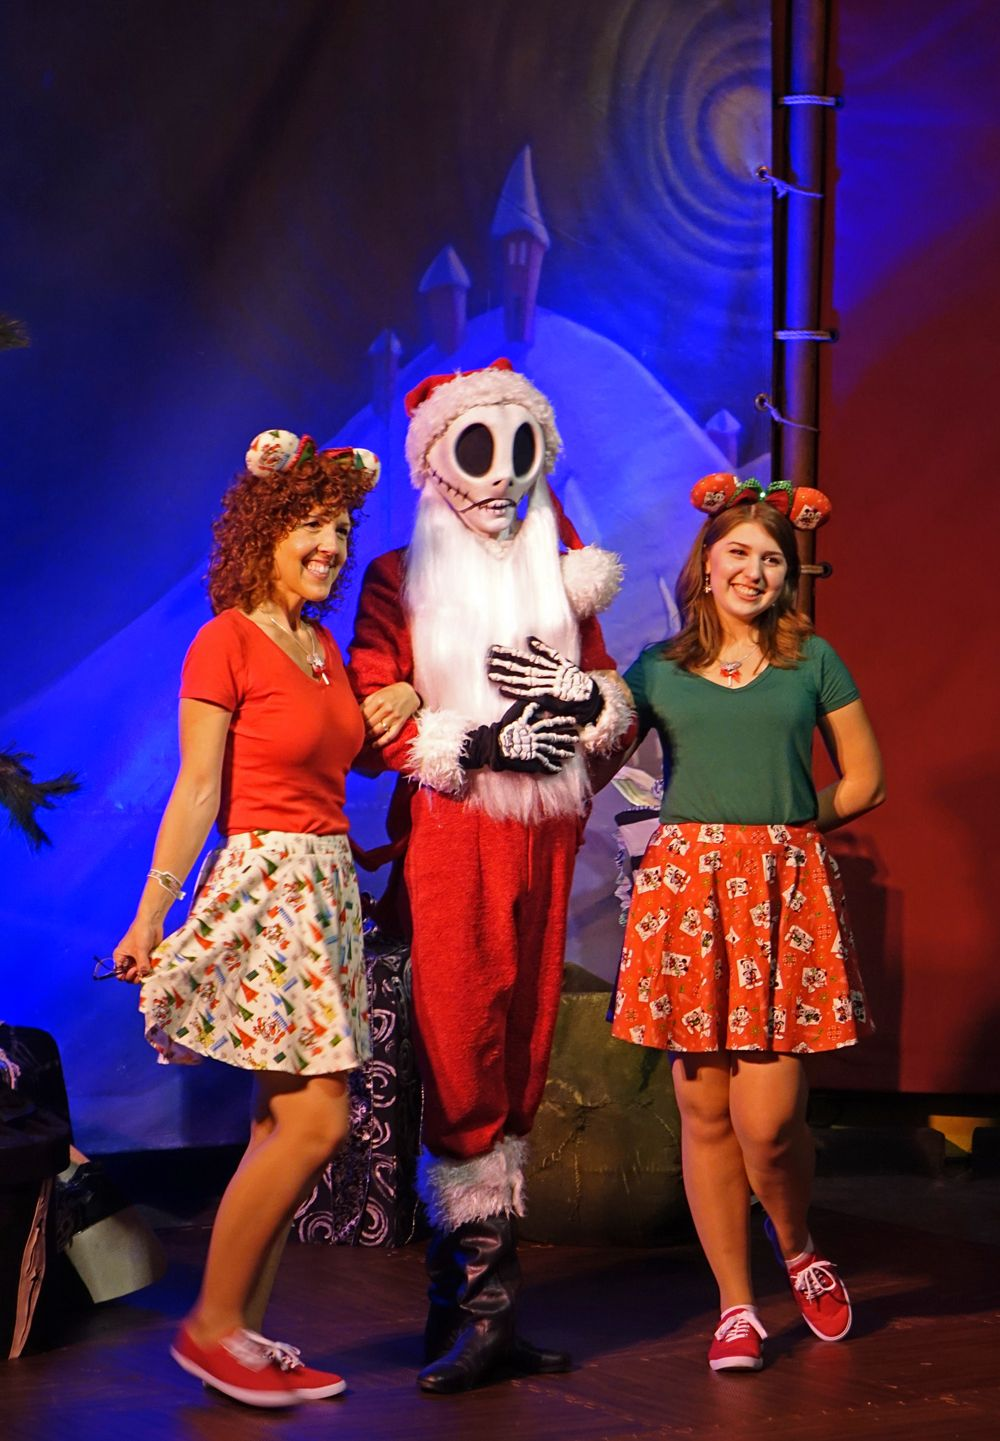 jack skellington greets guests in his sandy claws suit at mickeys very merry christmas party 2015